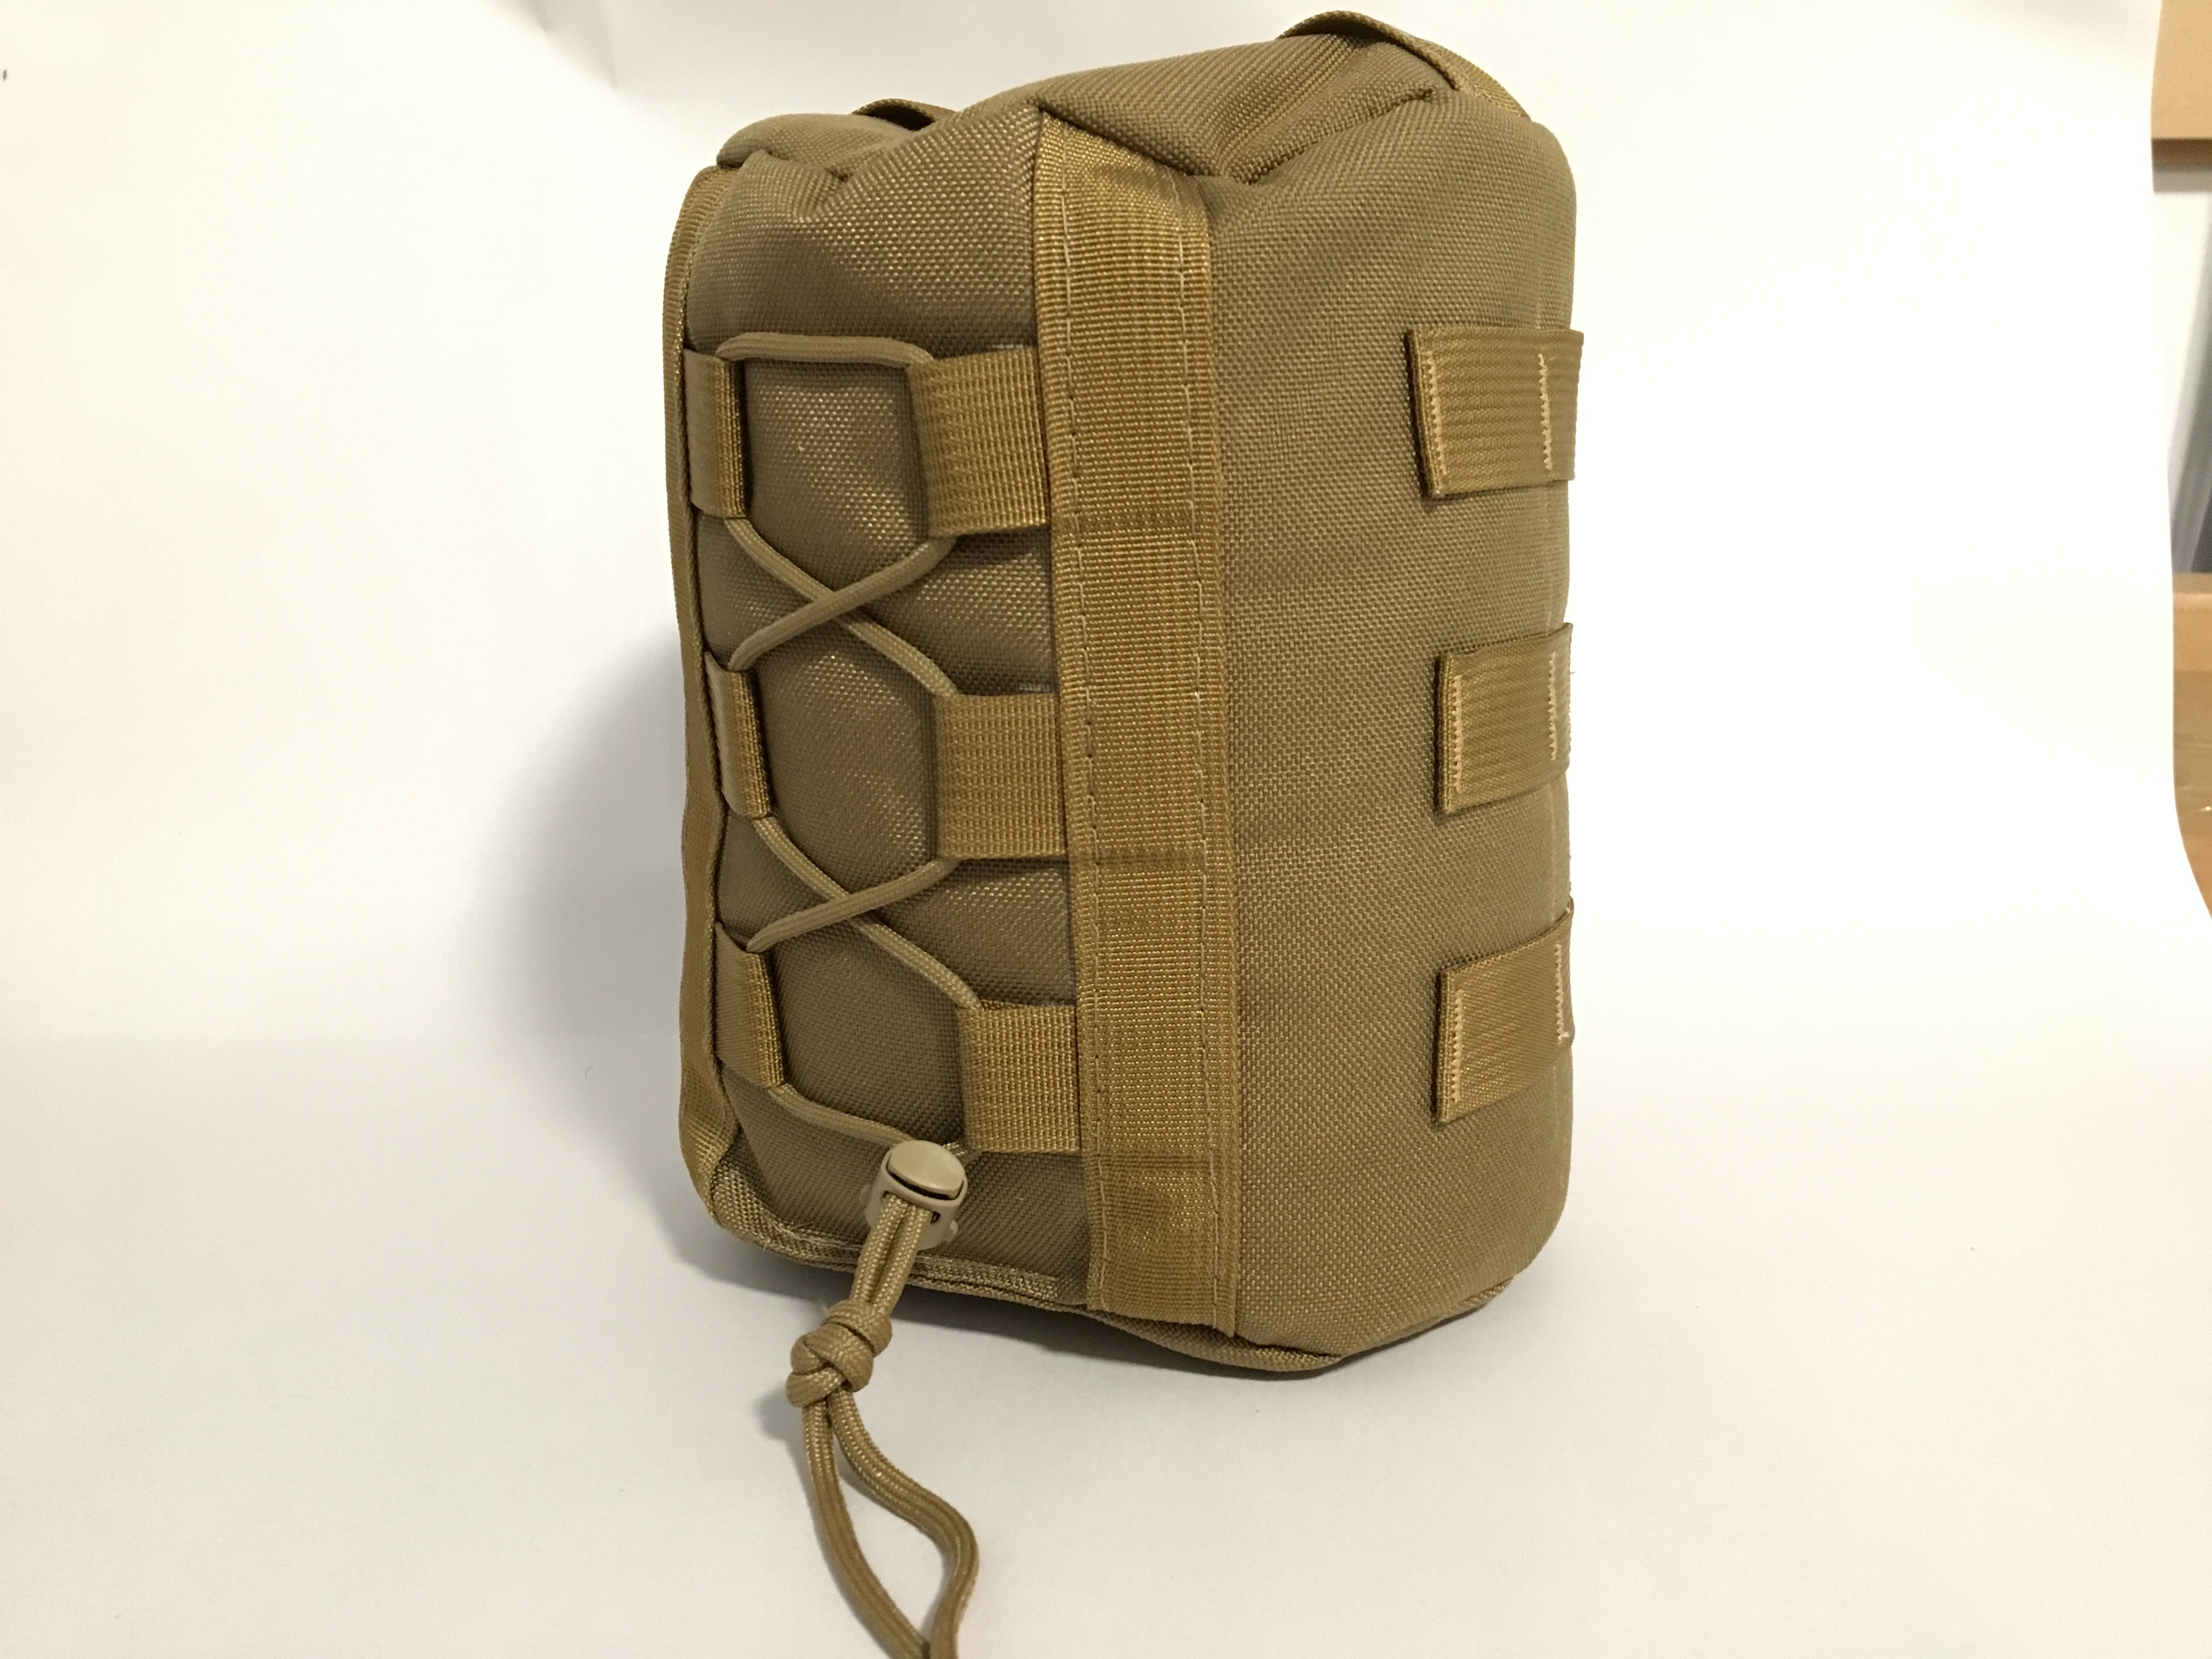 JSA Tactical - Shooting Bag Large - Coyote